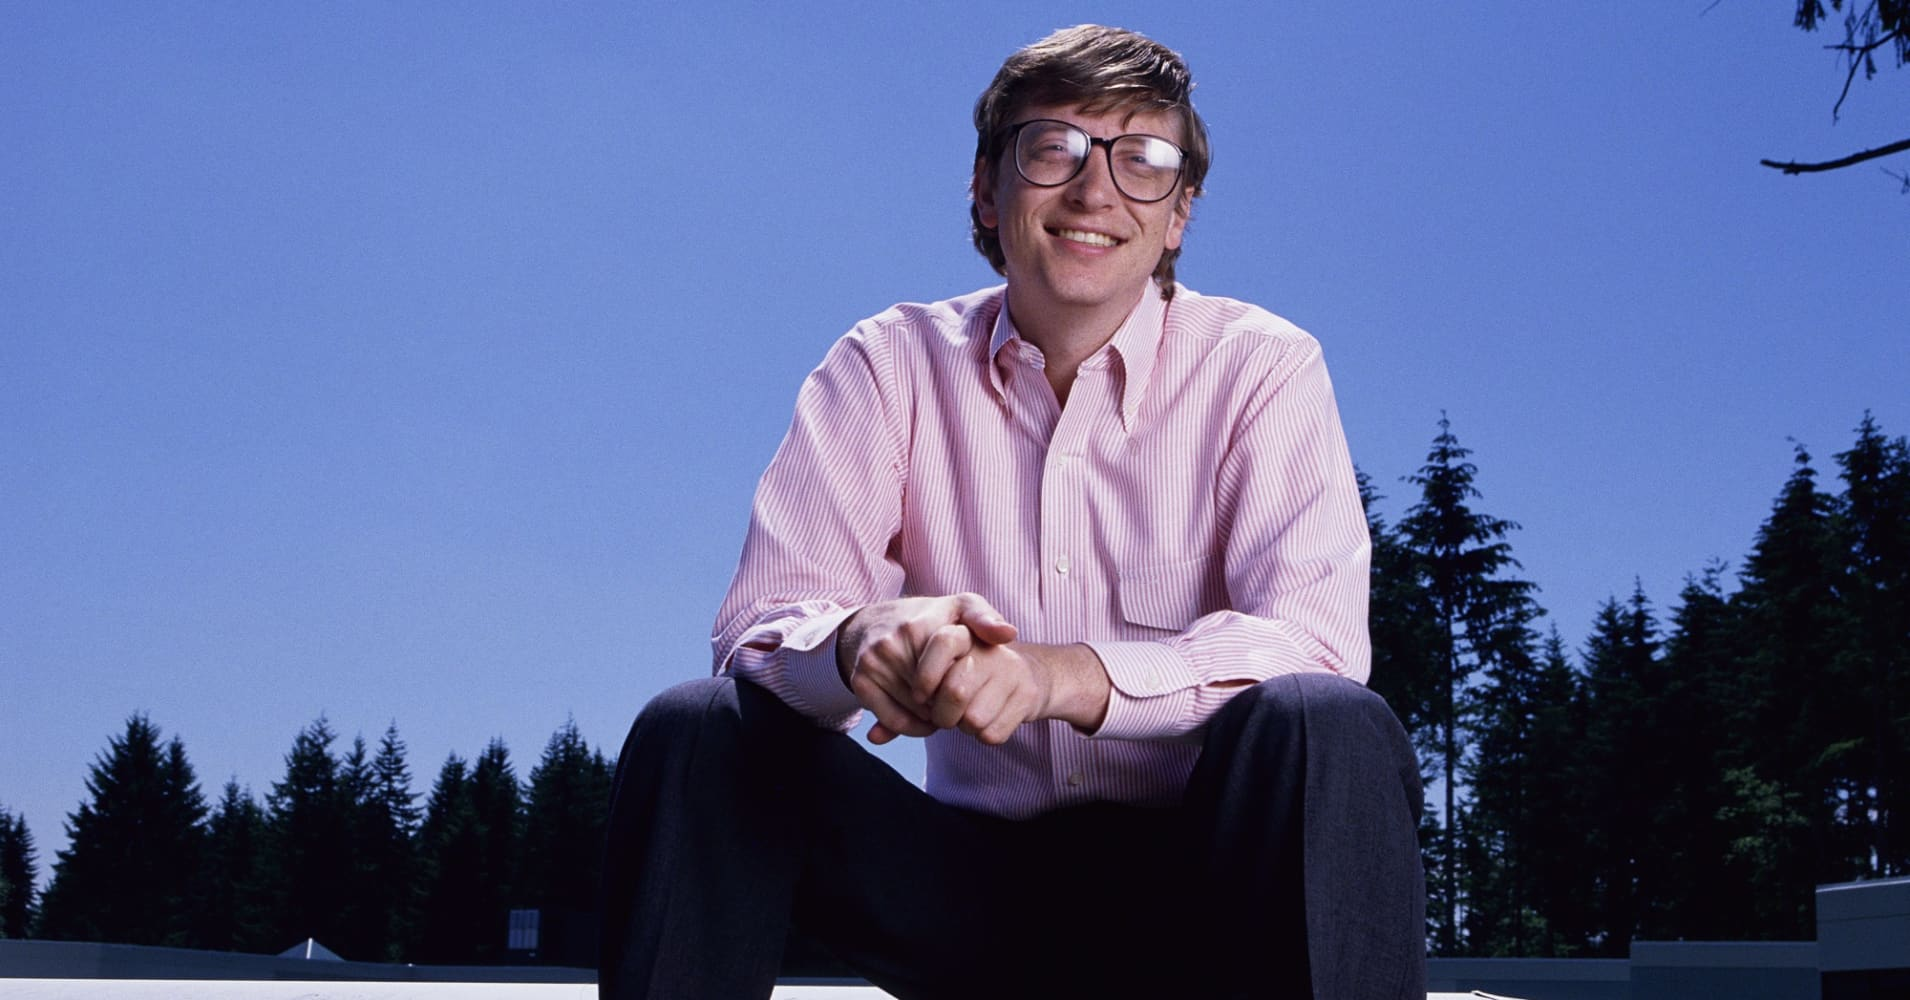 Bill Gates Is Investing $1.7 Billion in US Public Schools